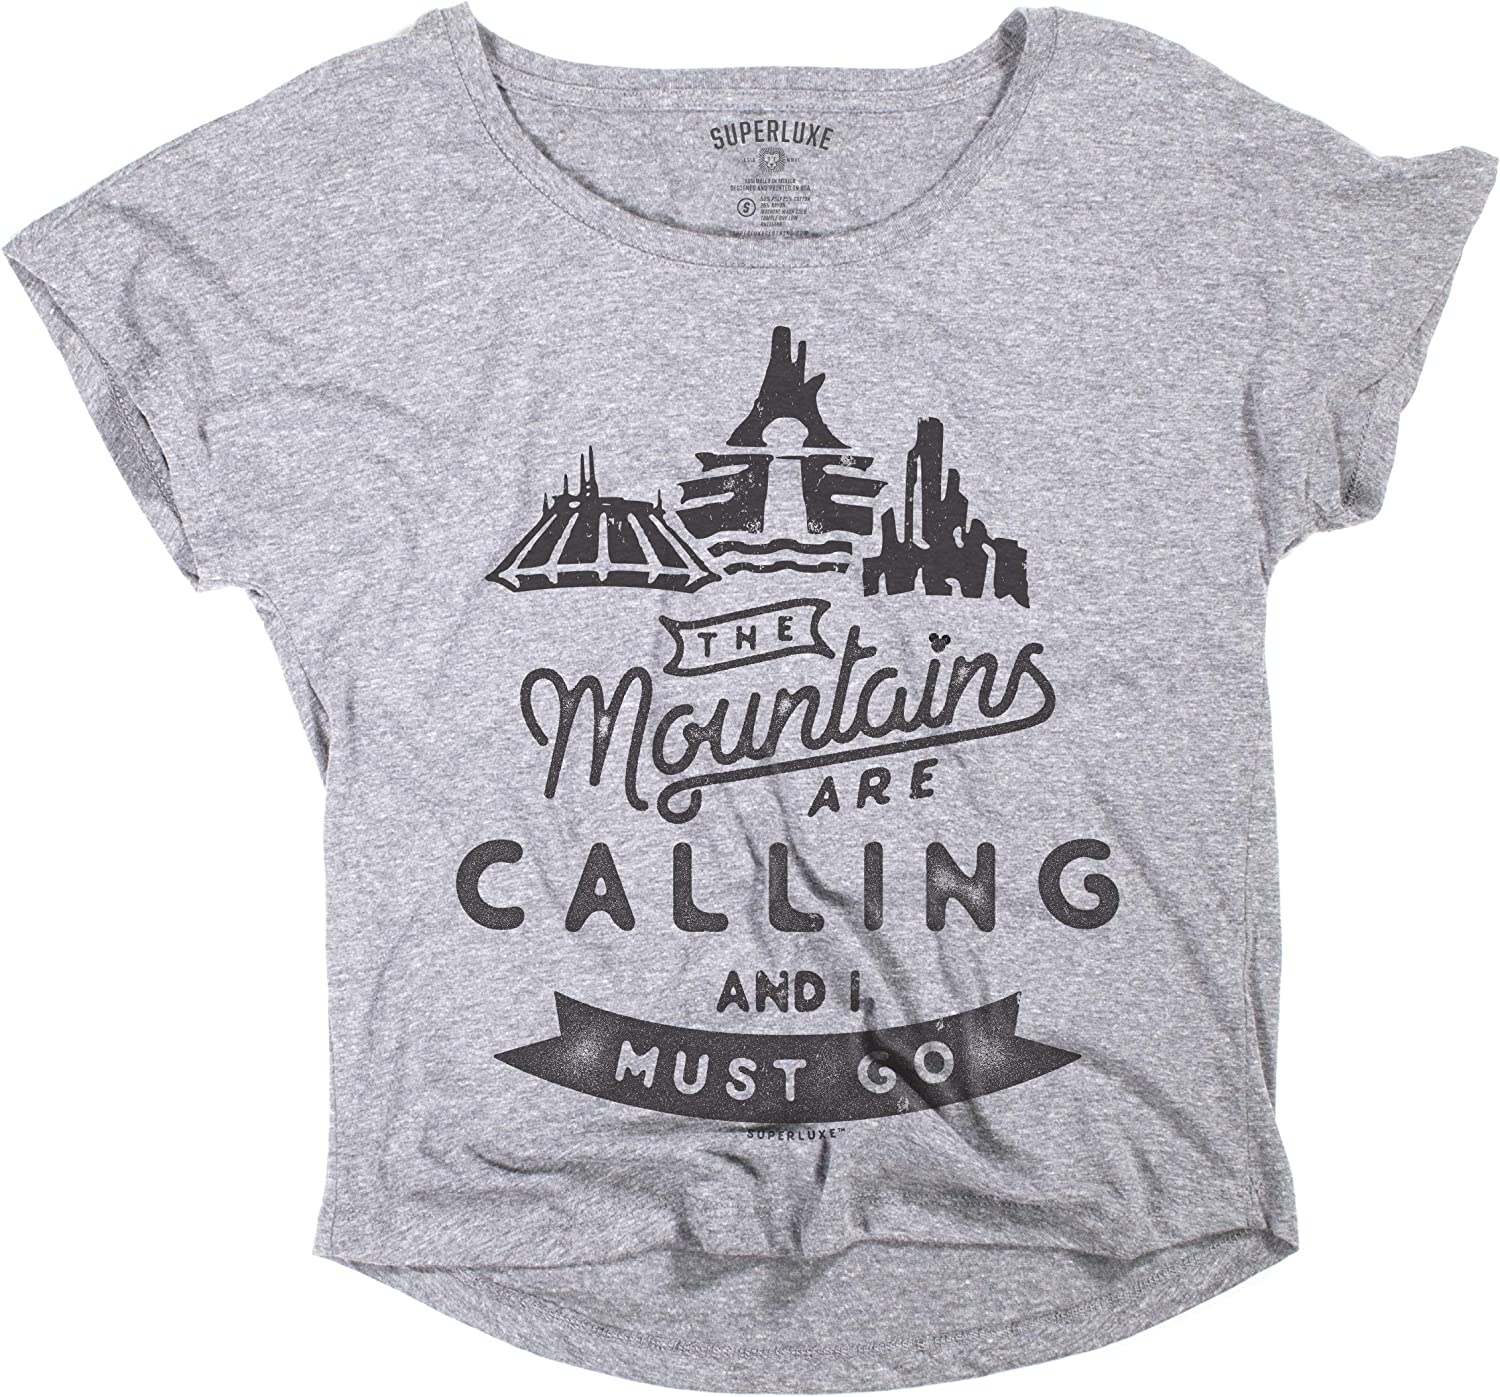 Superluxe Clothing Womens Mountains are Calling and I Must Go T-Shirt